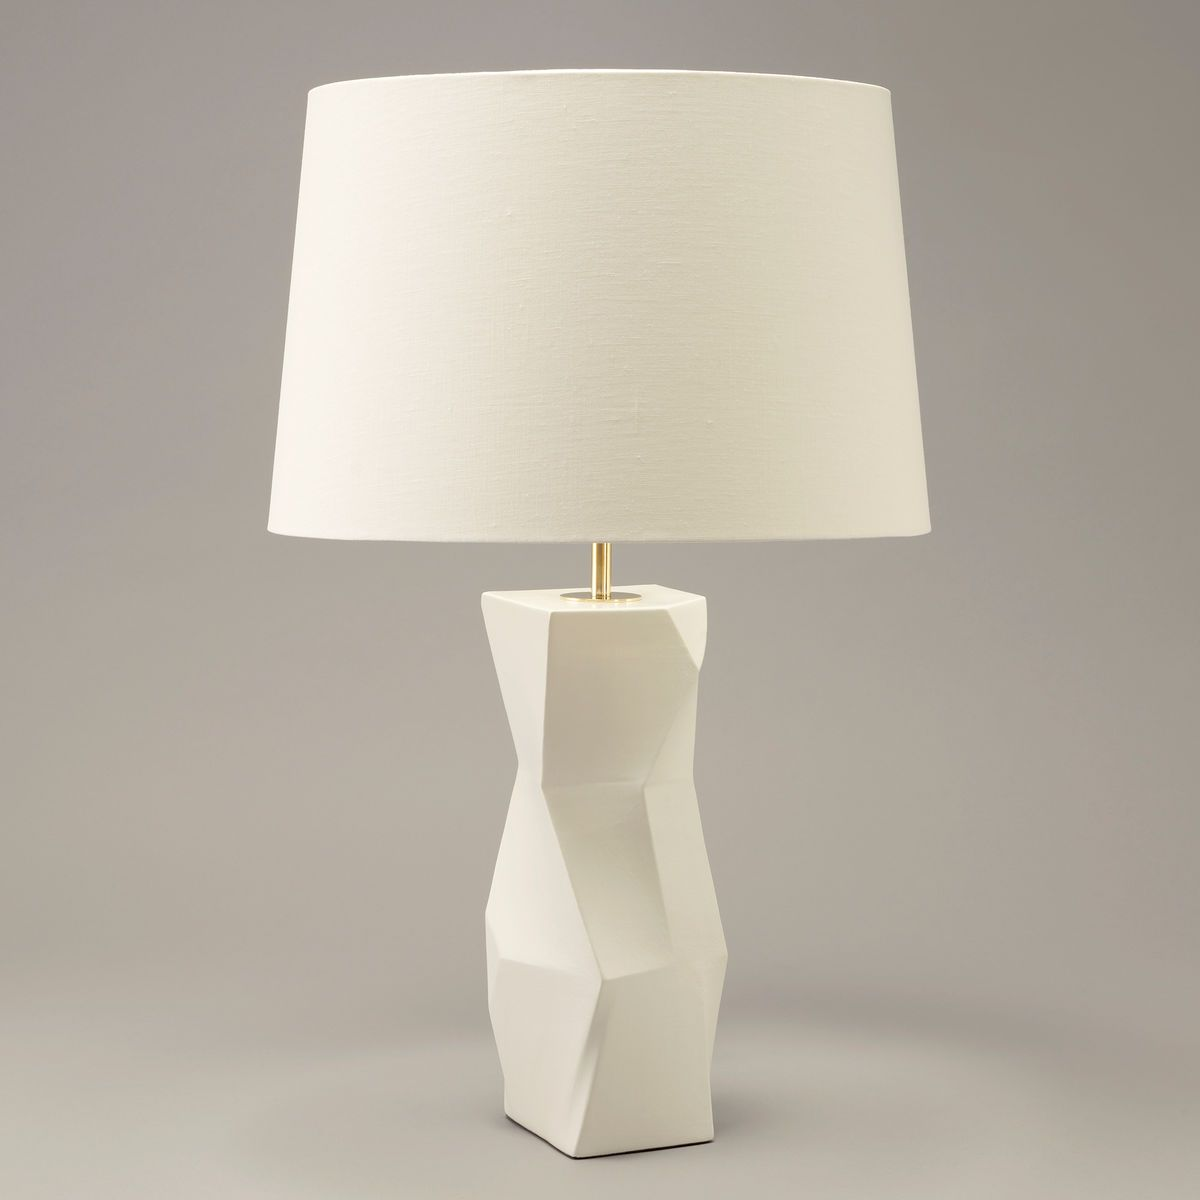 Longton Faceted Table Lamp Vaughan Designs Table Lamp Lamp Design